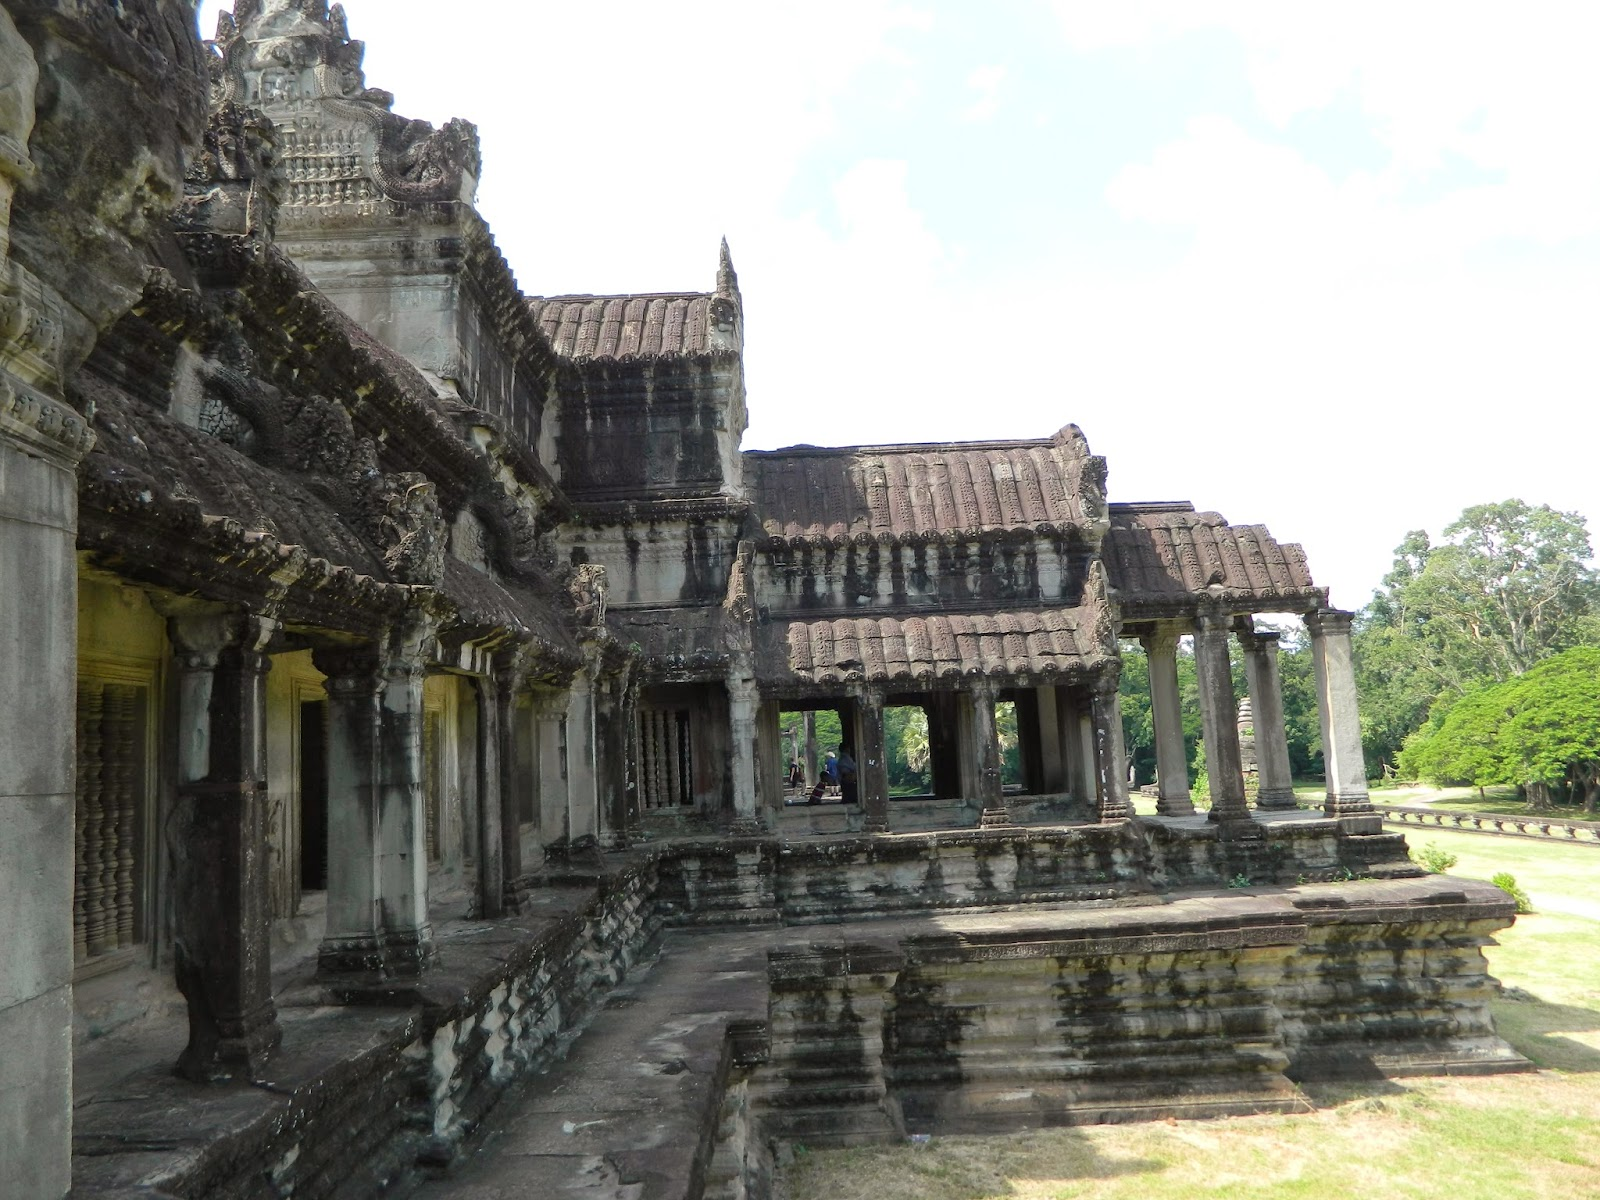 The gallery in the Angkor Wat